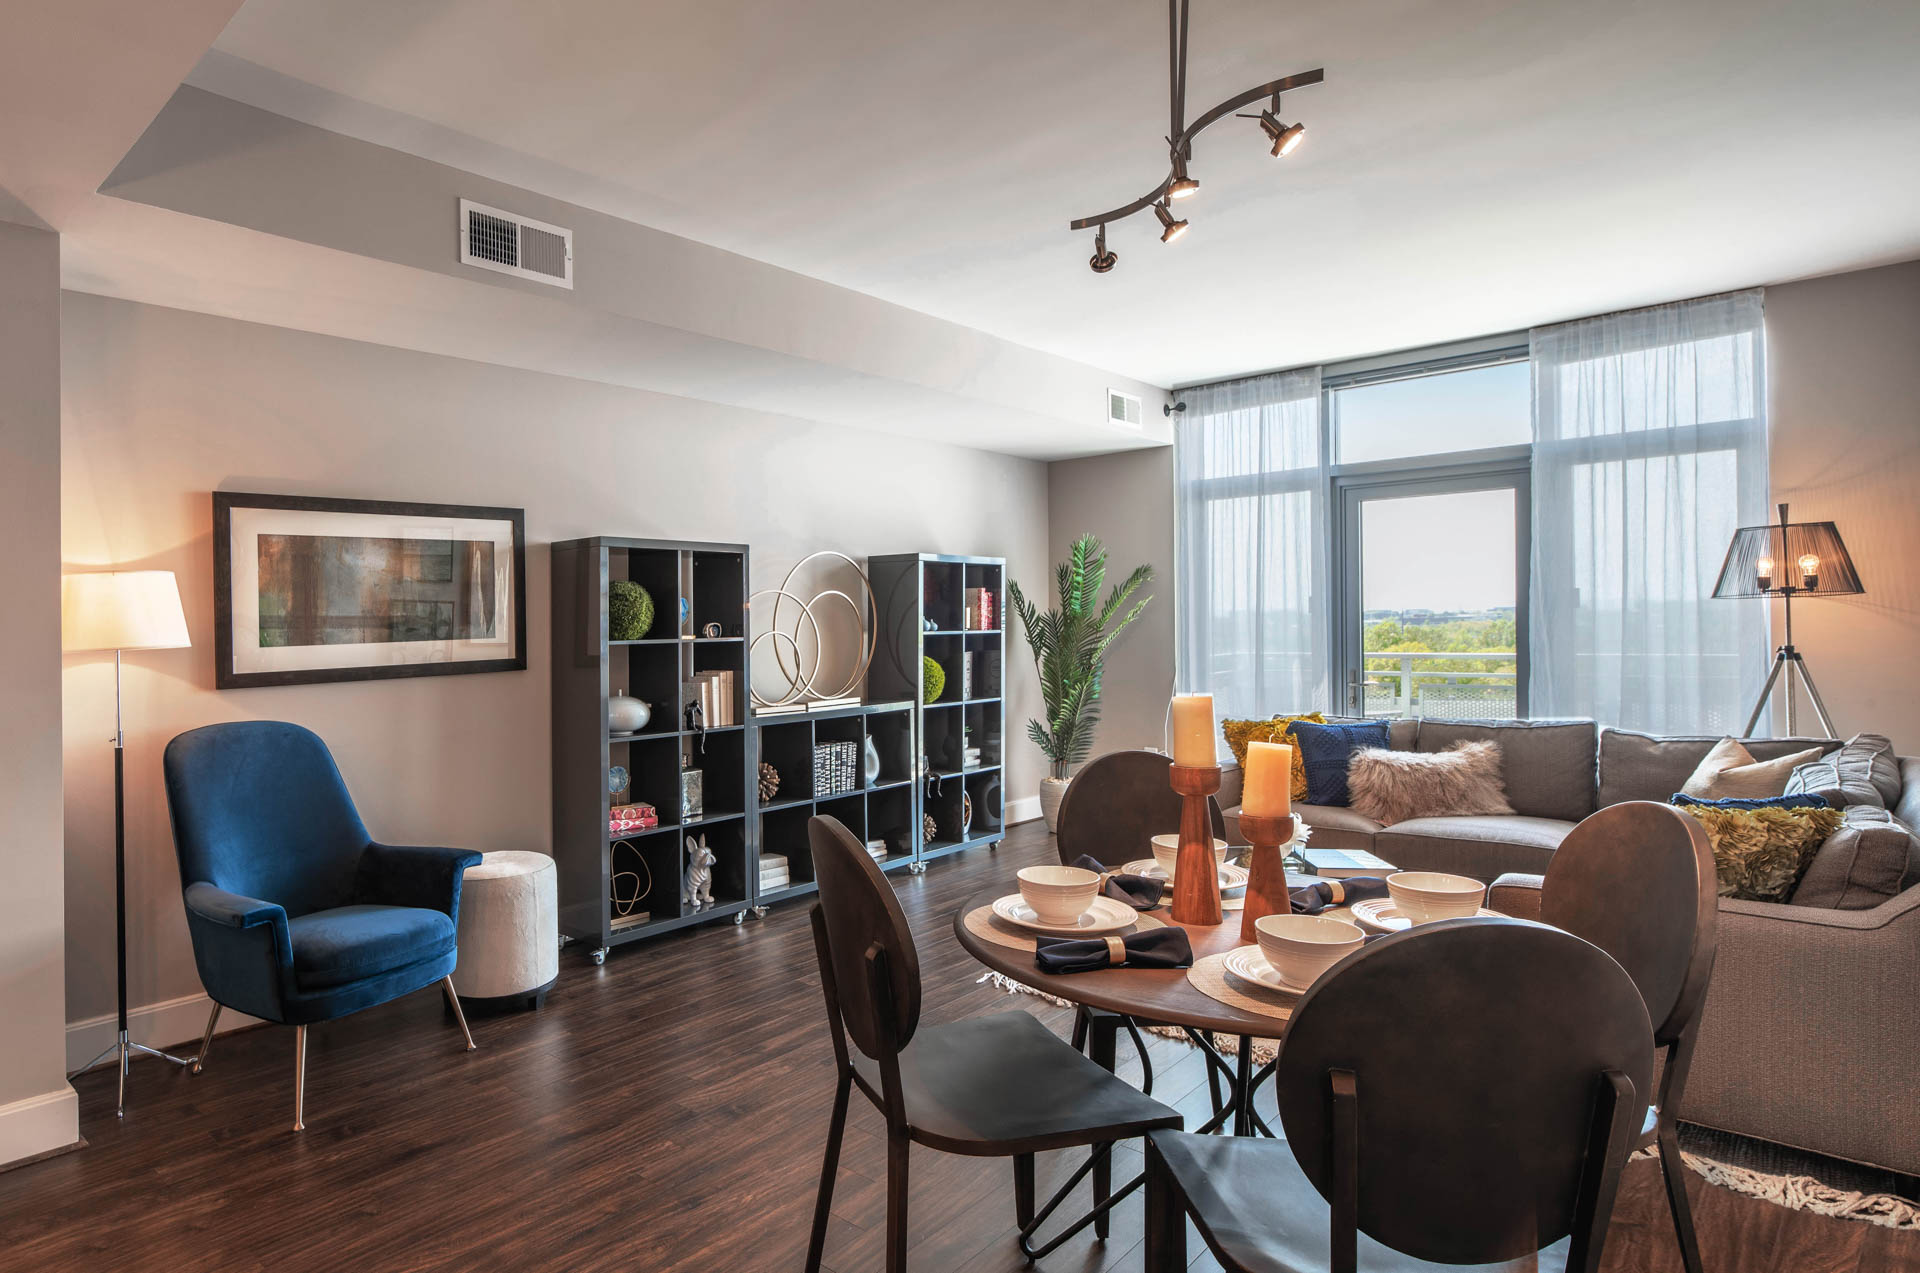 View from dining table to living area with velvet chairs, bookcase, and large windows